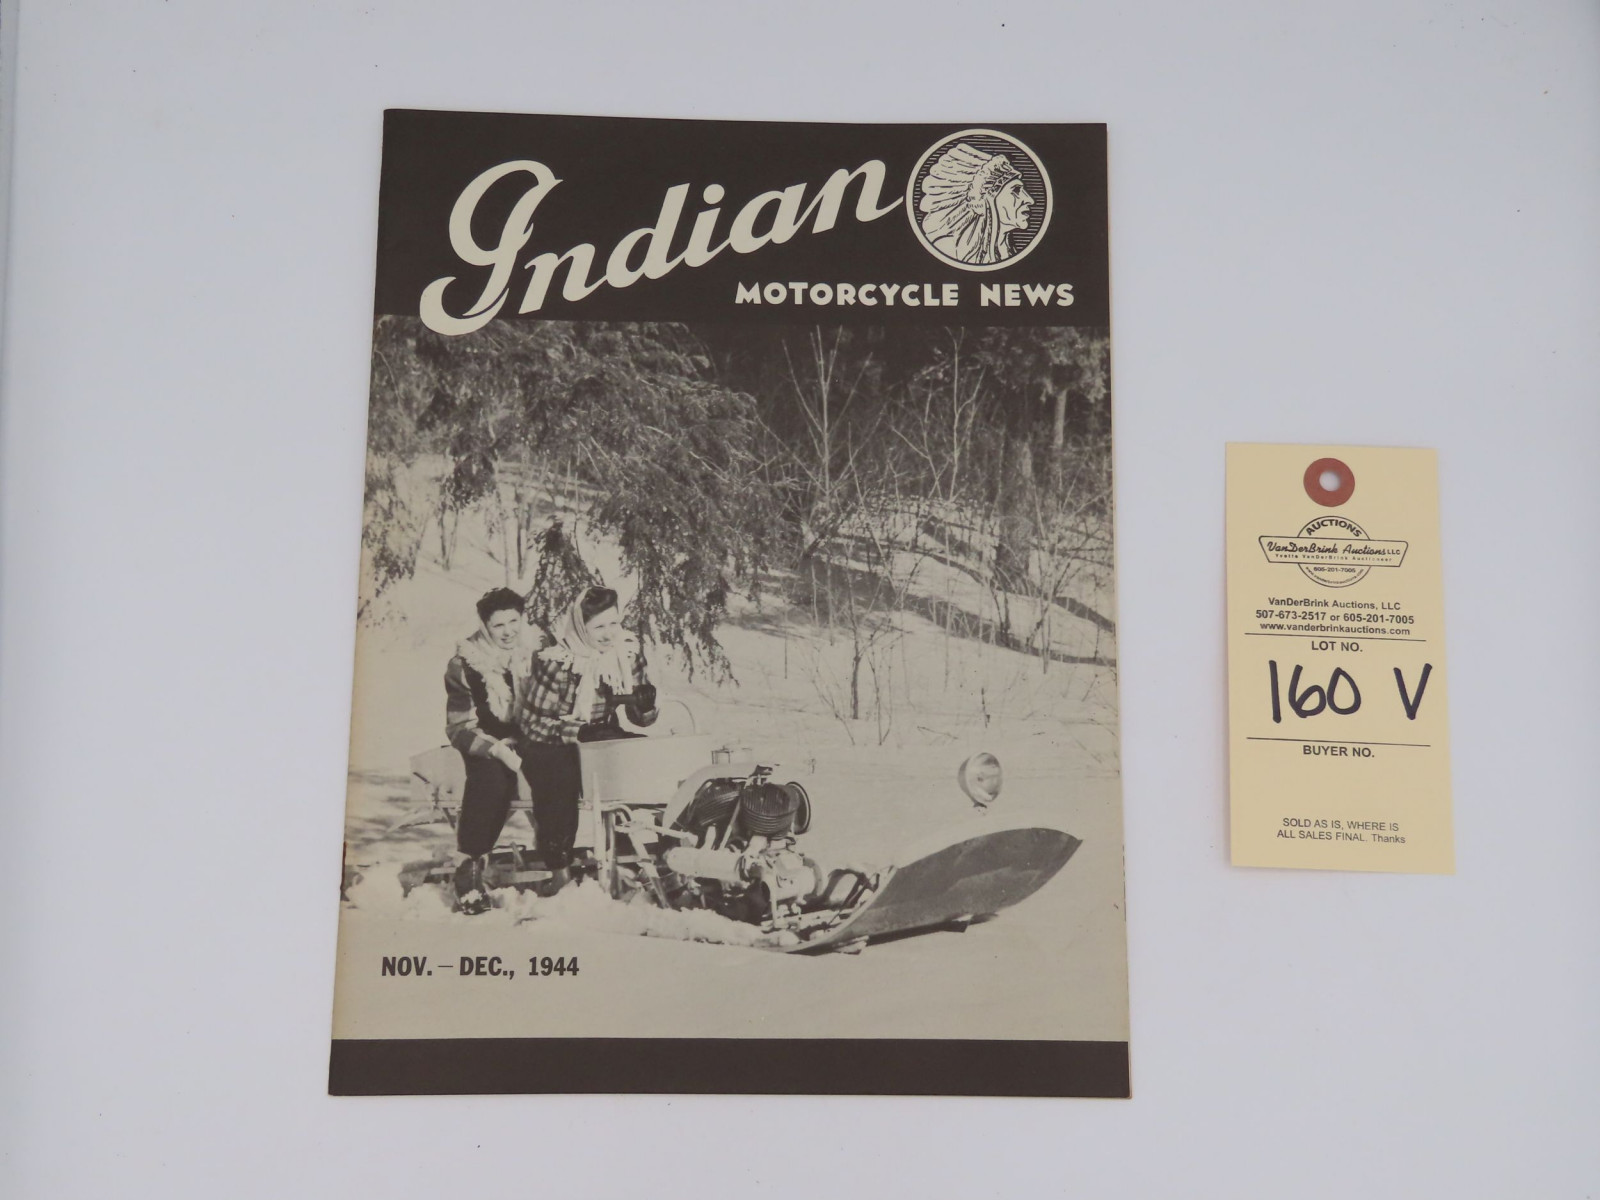 Indian Motorcycle News - 1944 - Image 7